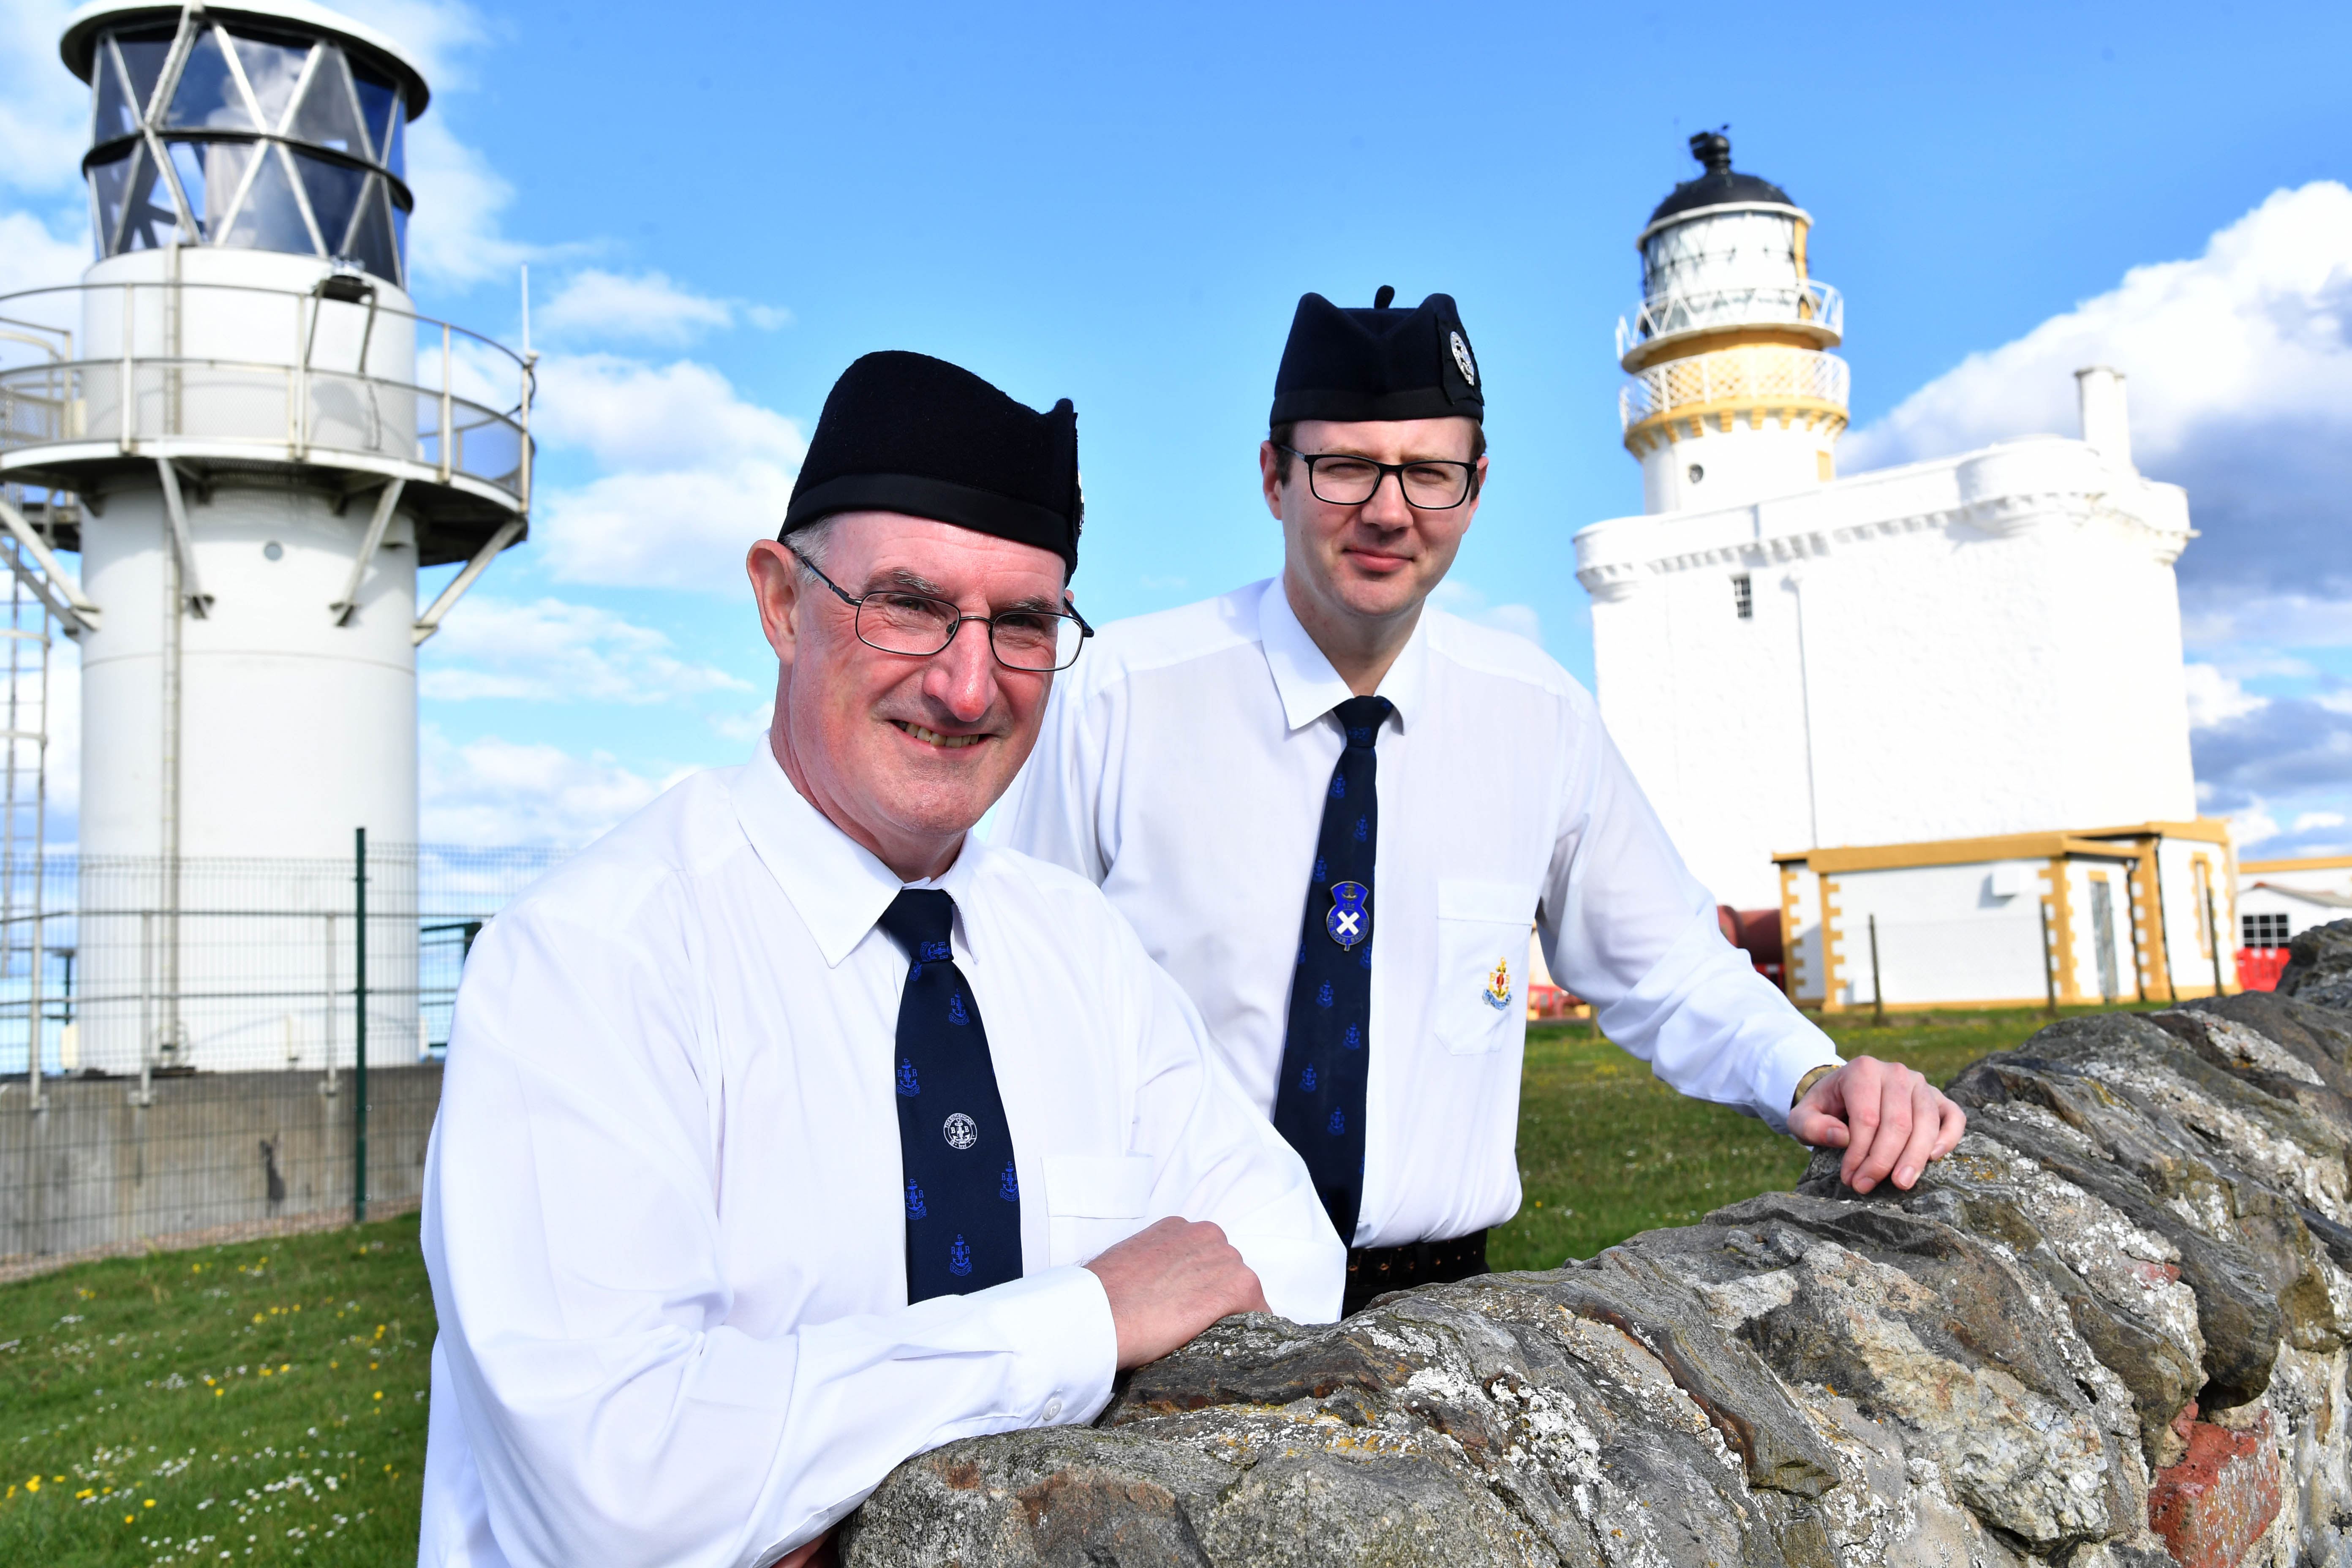 Fraserburgh BB leaders Martin Dunbar (L) and Michael Strachan (R) are off to Edinburgh for the royal garden party on the 3rd of July.